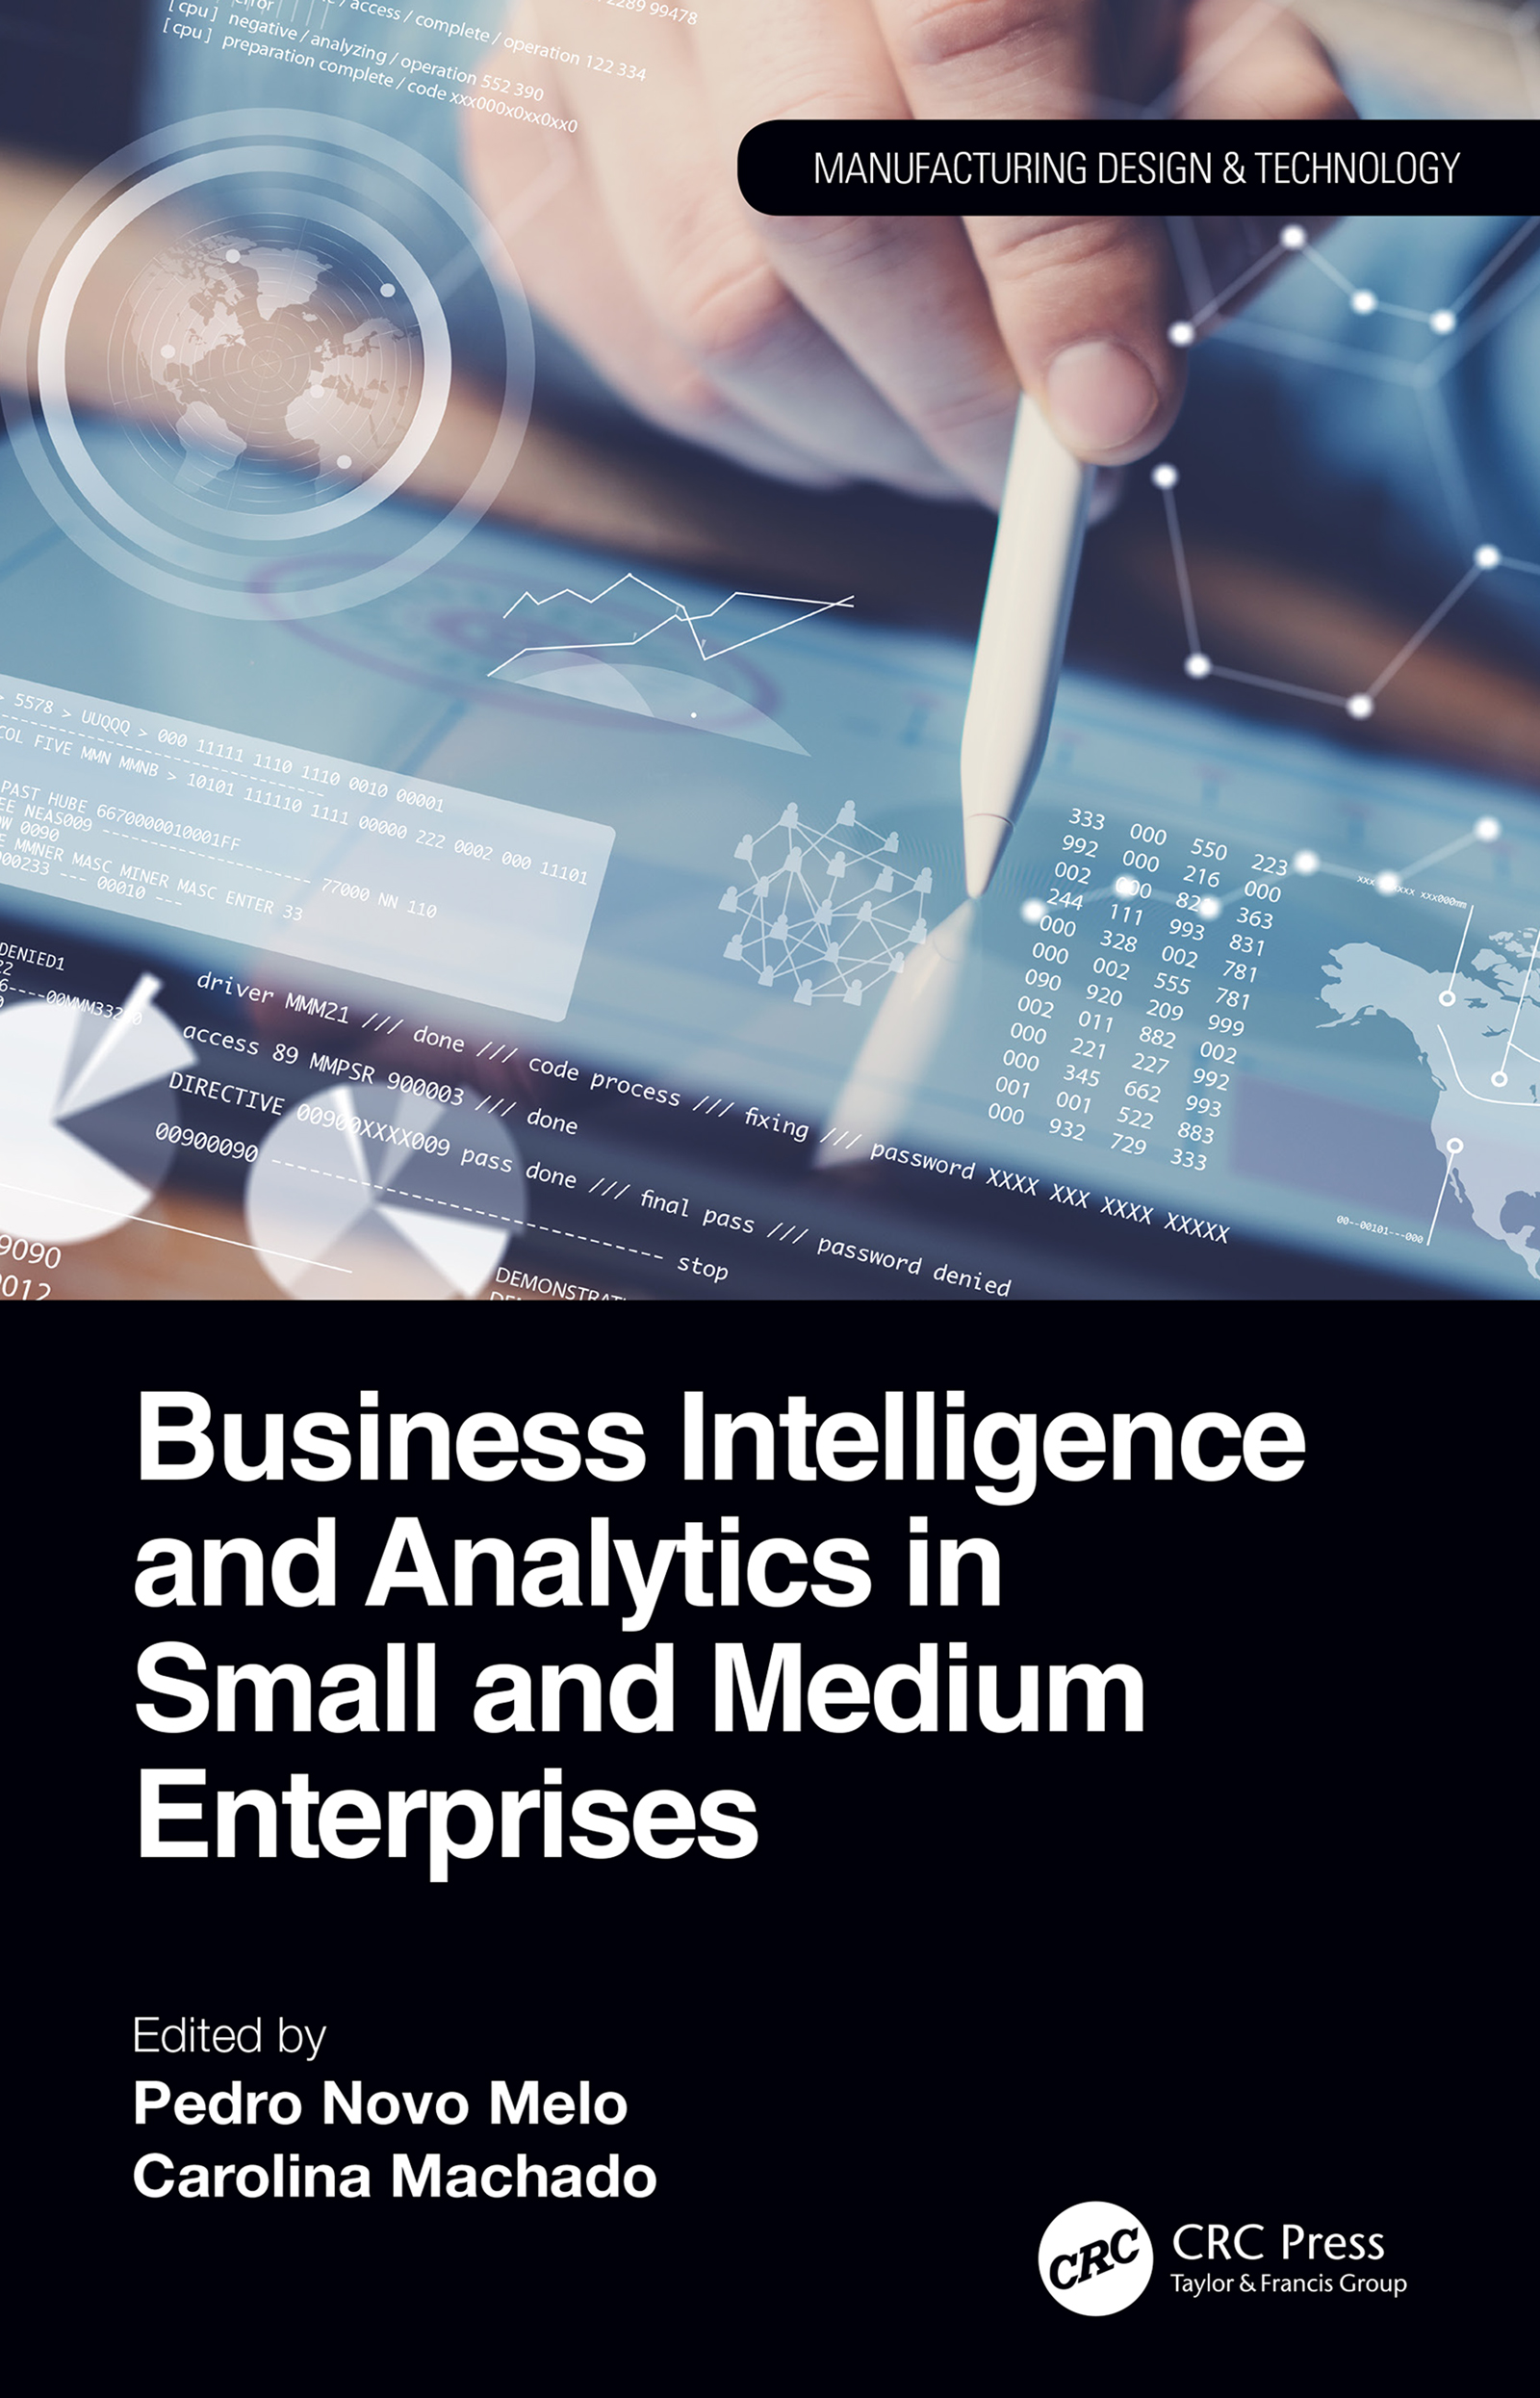 Business Intelligence and Analytics in Small and Medium Enterprises book cover